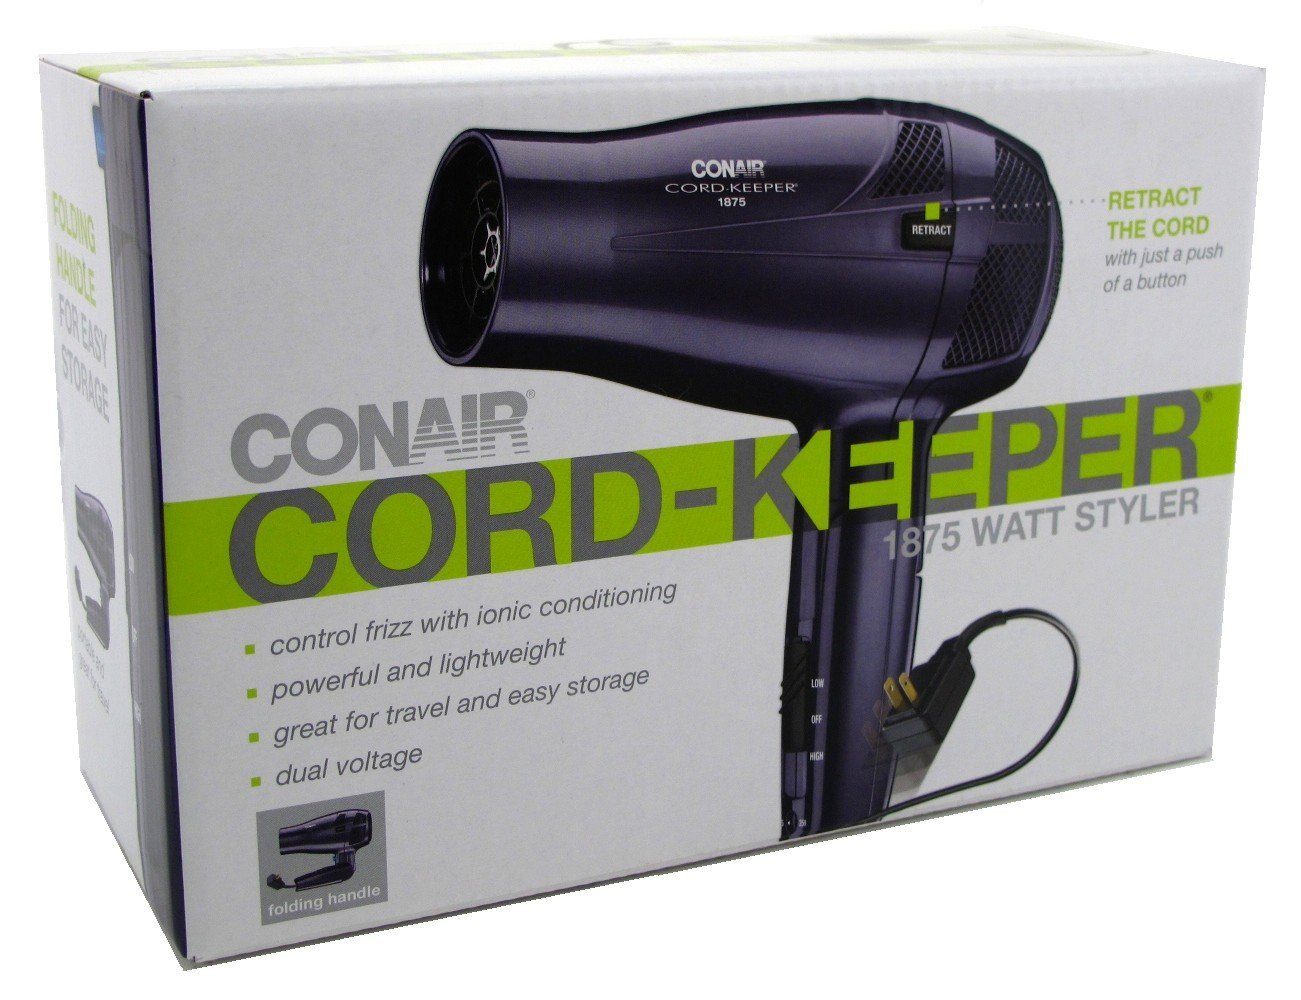 amazon com conair 1875 watt ionic conditioning cord keeper amazon com conair 1875 watt ionic conditioning cord keeper styler hair dryer folding handle blue beauty